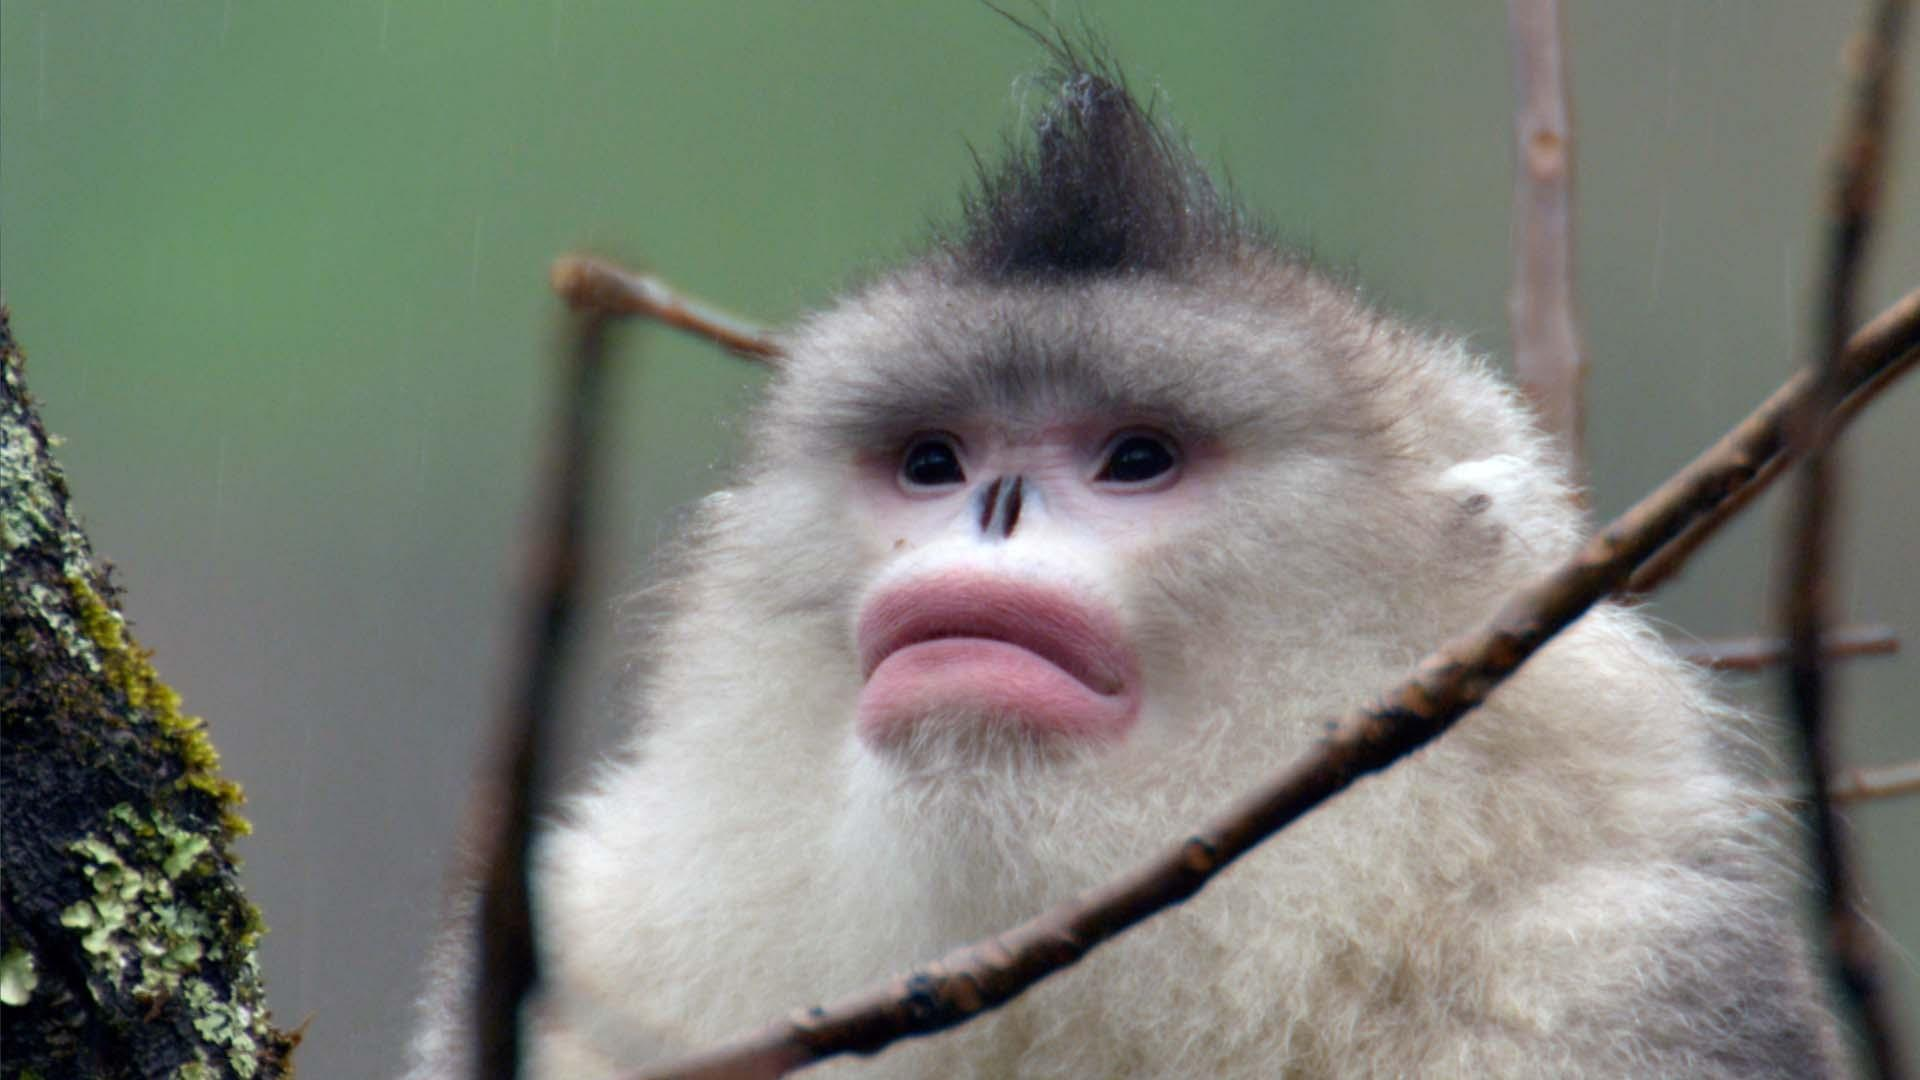 Snub-nosed Monkeys Use Family to Stay Warm